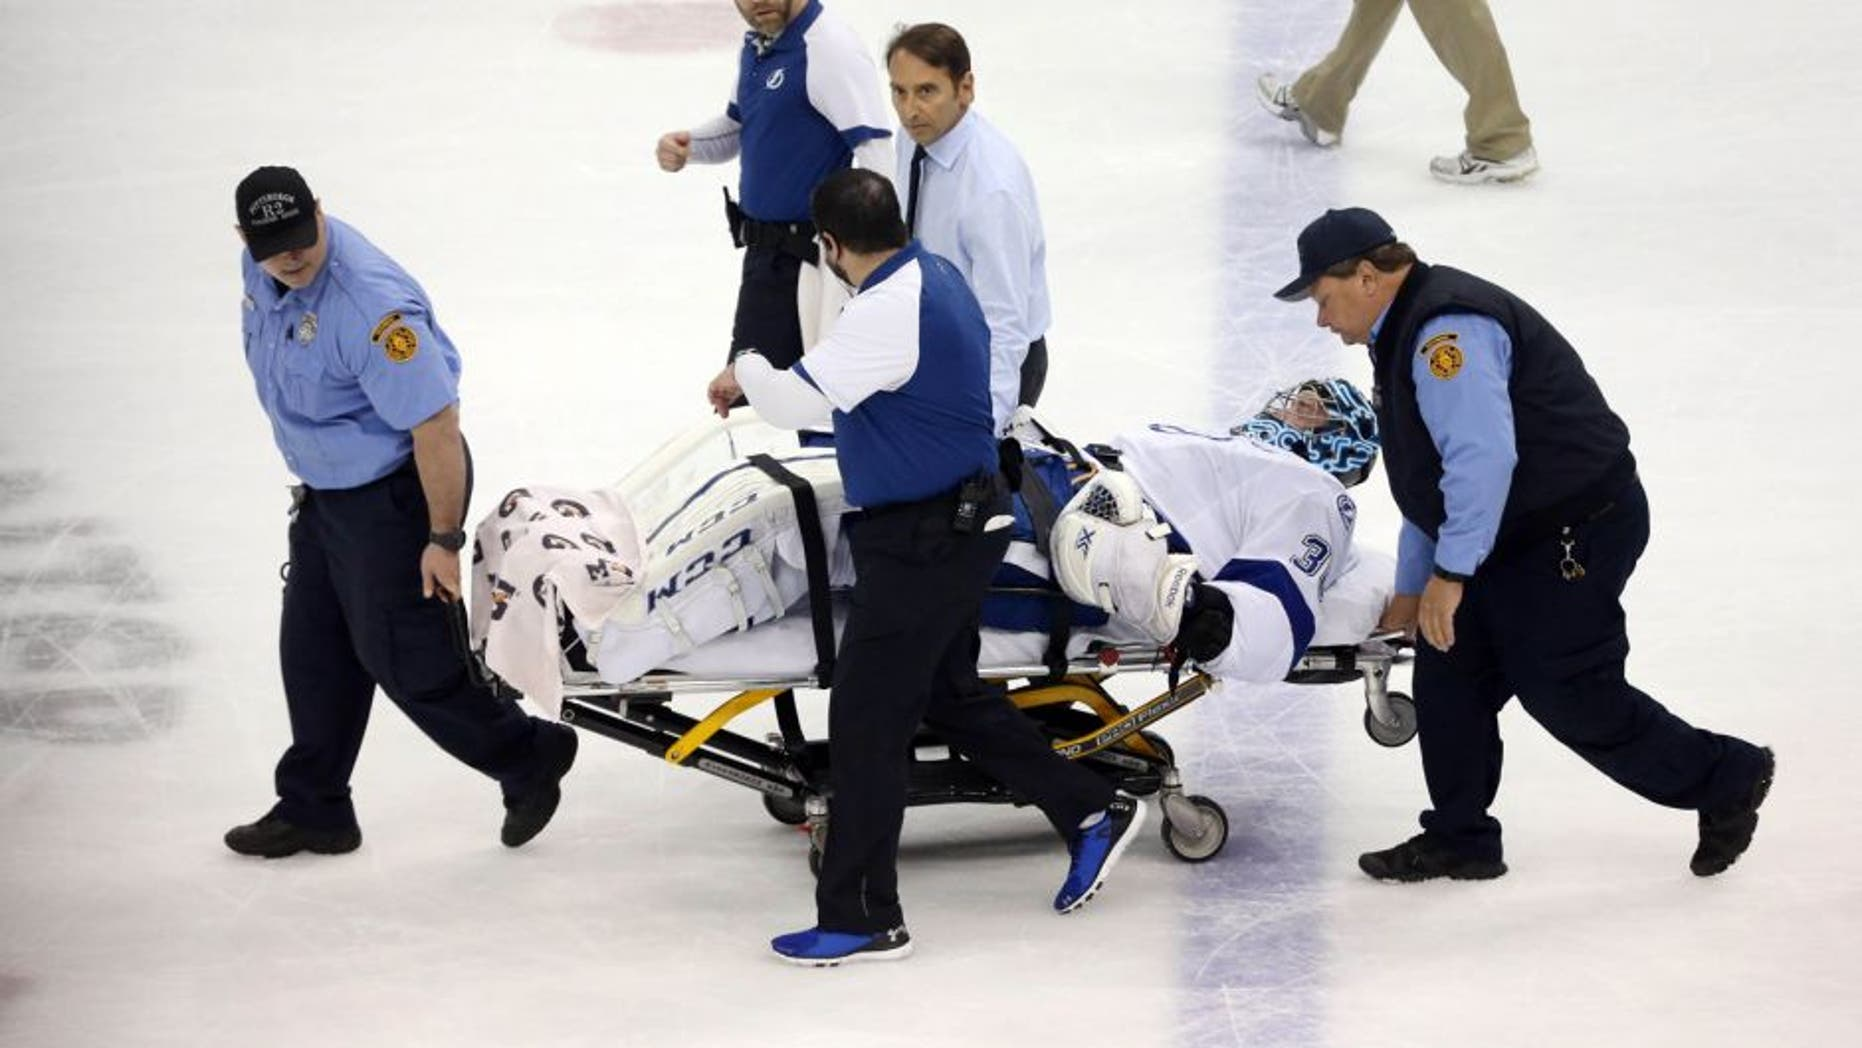 May 13, 2016; Pittsburgh, PA, USA; Tampa Bay Lightning goalie Ben Bishop (30) is taken from the ice on a stretcher after suffering an apparent injury against the Pittsburgh Penguins during the first period in game one of the Eastern Conference Final of the 2016 Stanley Cup Playoffs at the CONSOL Energy Center. Mandatory Credit: Charles LeClaire-USA TODAY Sports